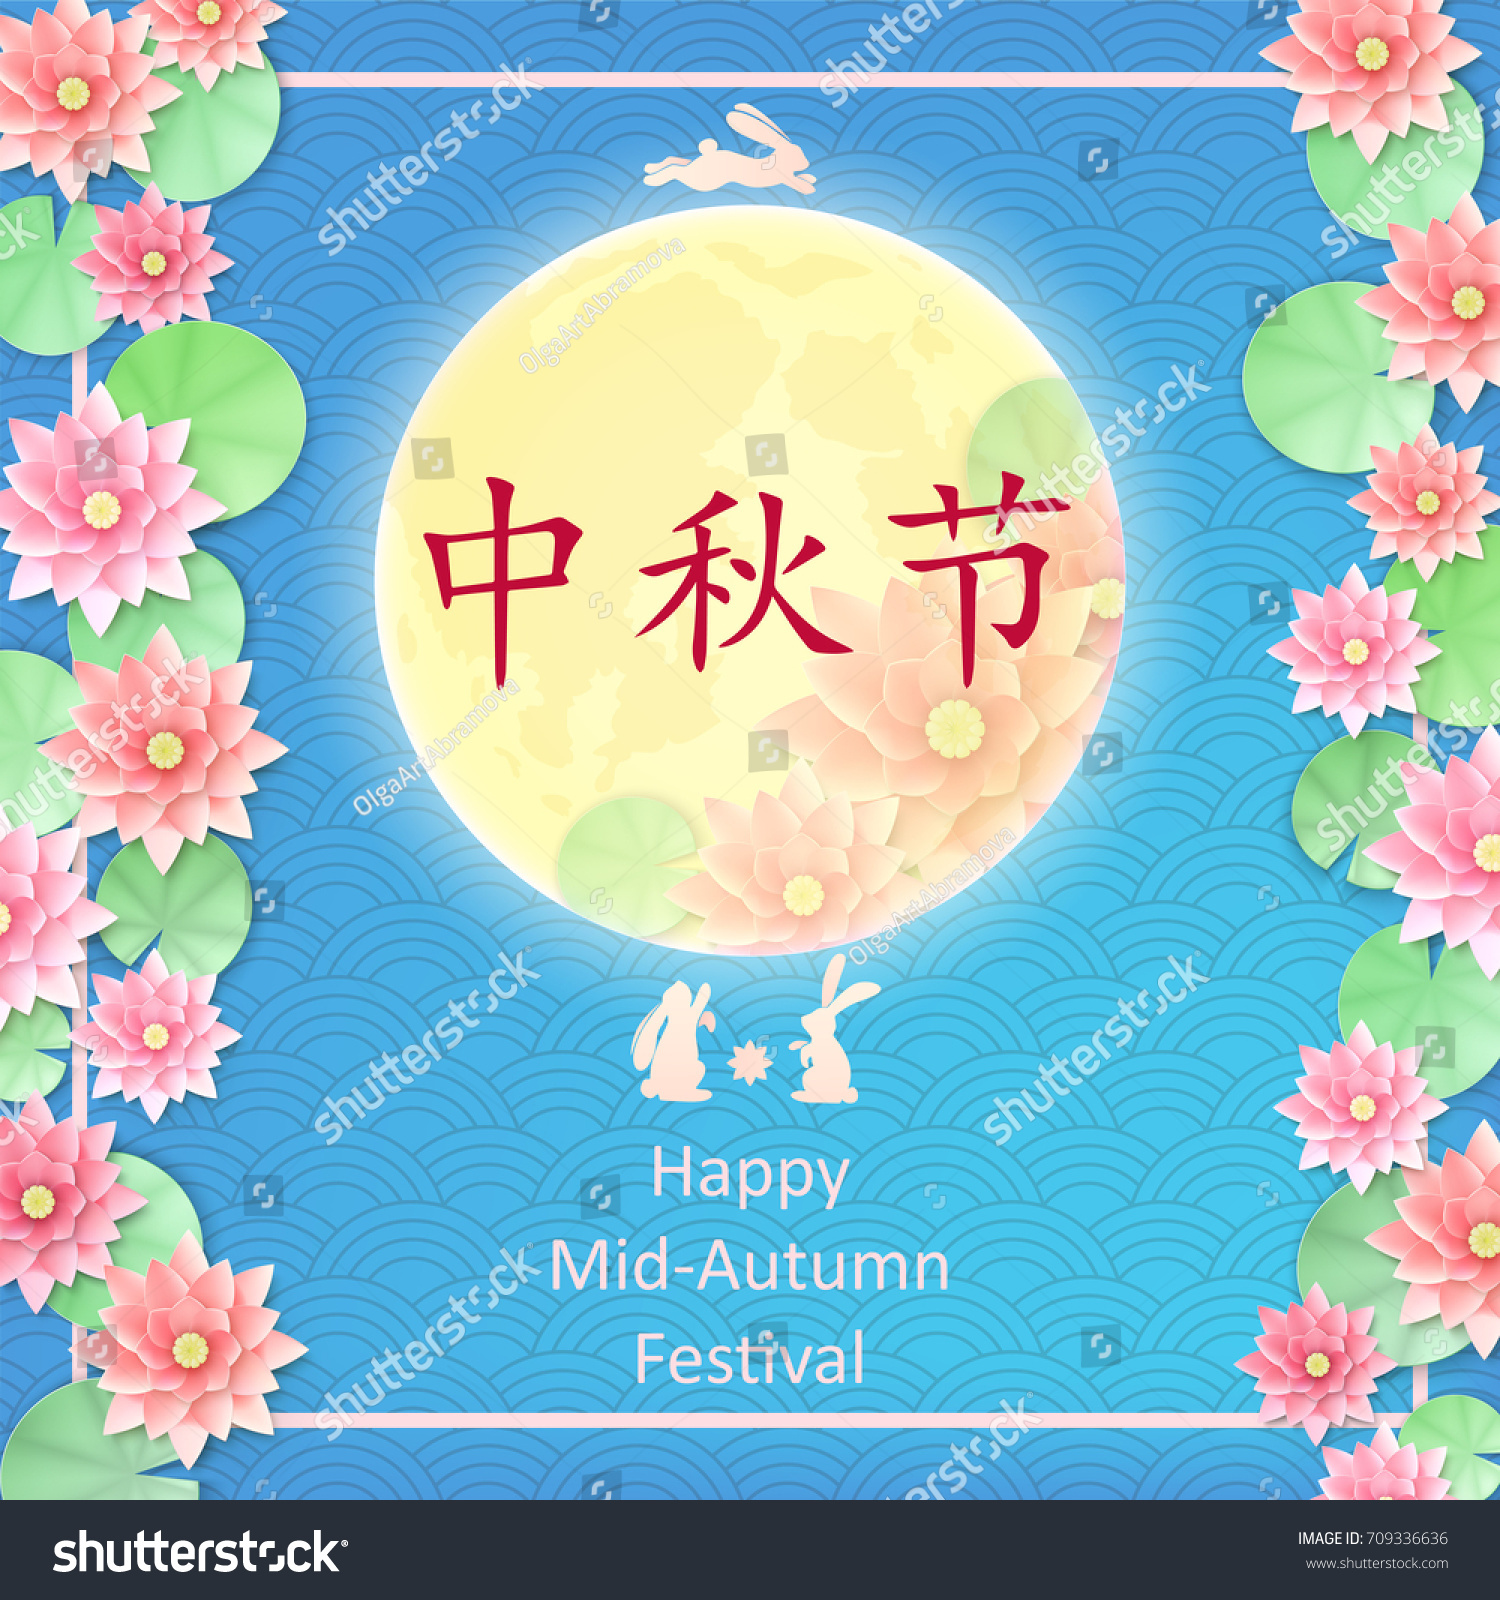 Chinese mid autumn festival greeting card stock illustration chinese mid autumn festival greeting card stock illustration 709336636 shutterstock kristyandbryce Choice Image